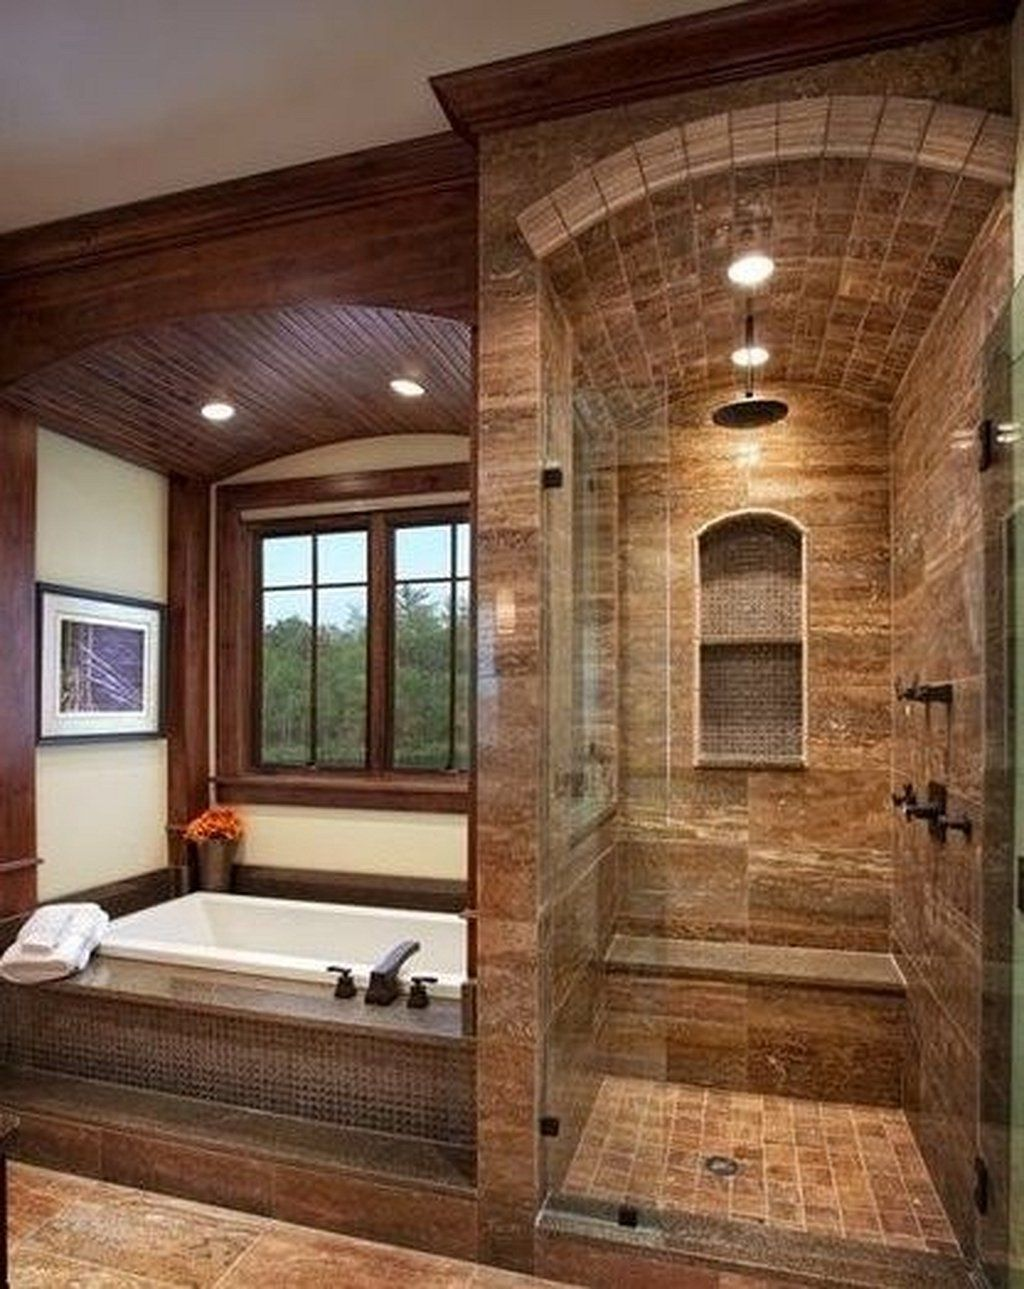 Rustic Bathroom Remodel Master Bathroom Walk In Shower Ideas Stuff Rustic